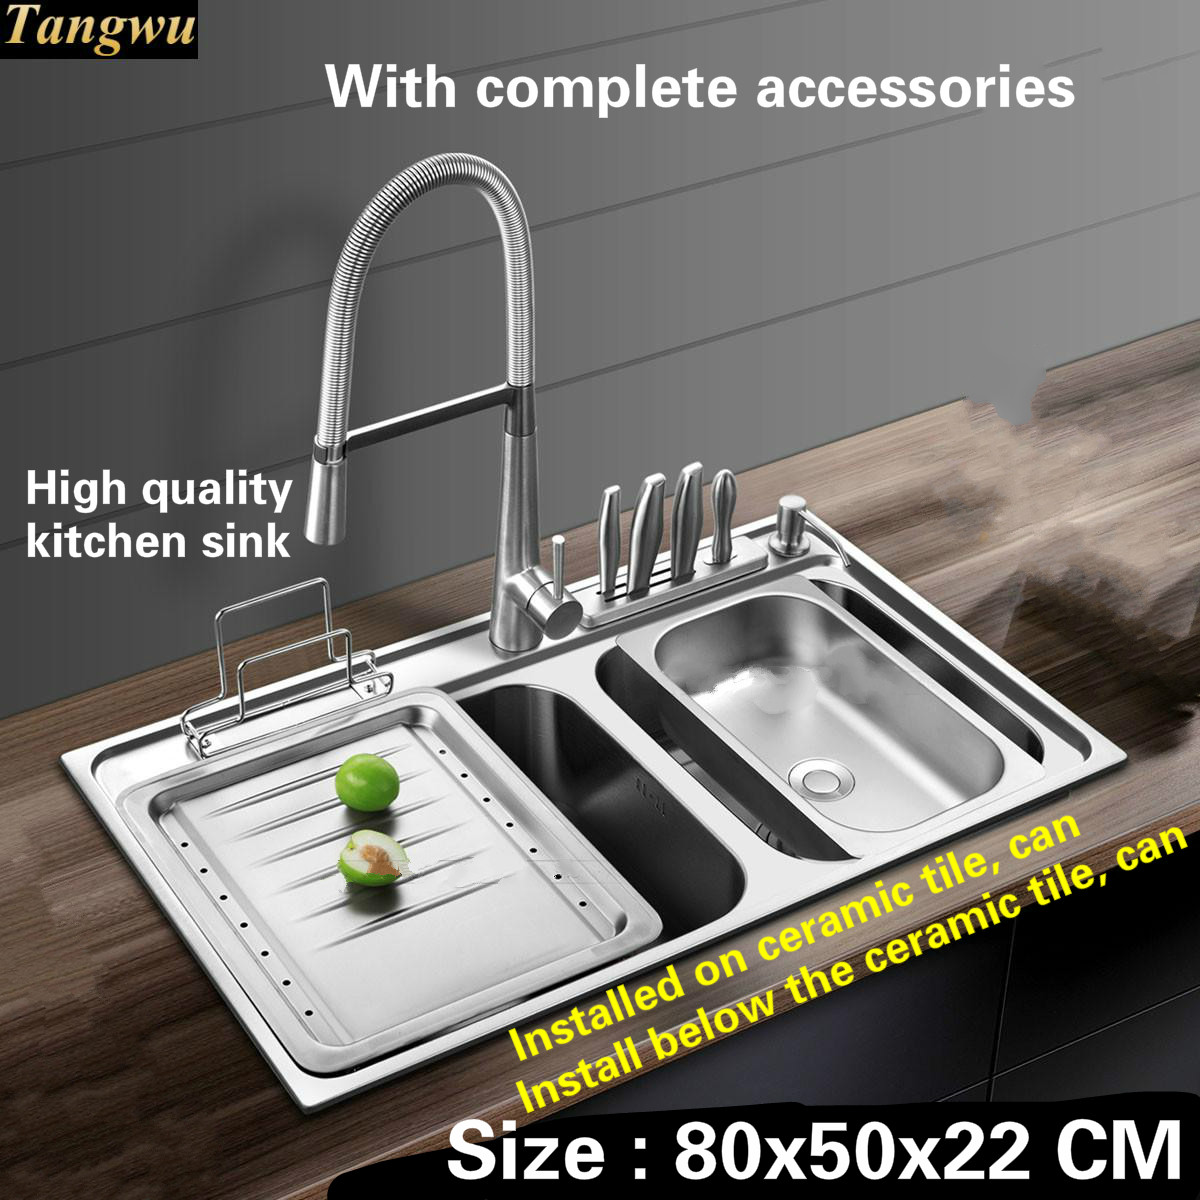 Tangwu Luxurious kitchen sink 1 mm thick food grade 304 stainless steel durable large double slot whole drawing  80x50x22 CM free shipping food grade 304 stainless steel hot sell kitchen sink double trough 0 8 mm thick ordinary 78x43 cm